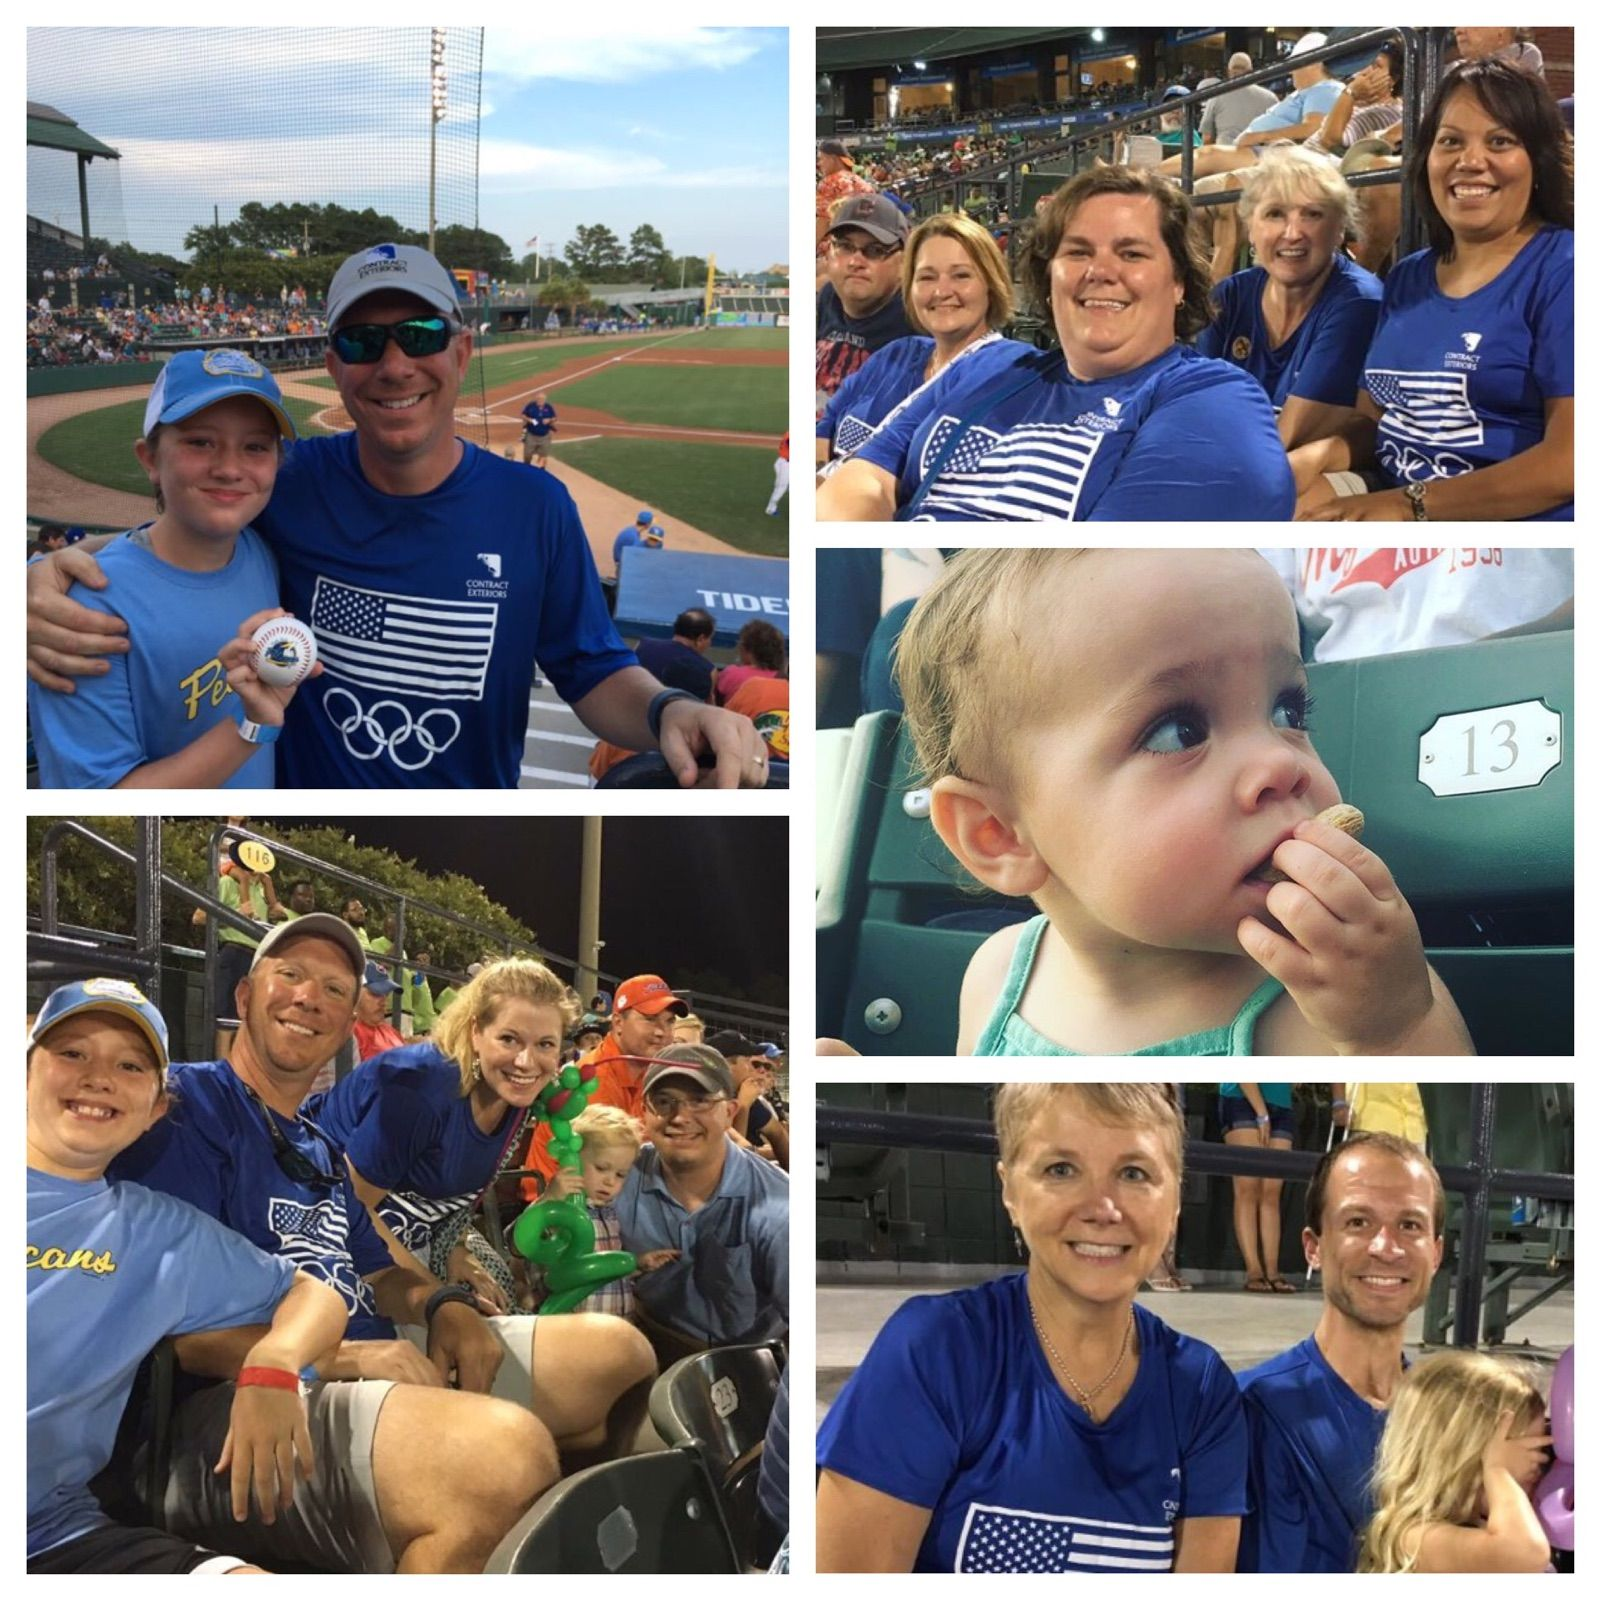 Our Myrtle Beach team at the Pelicans Baseball game